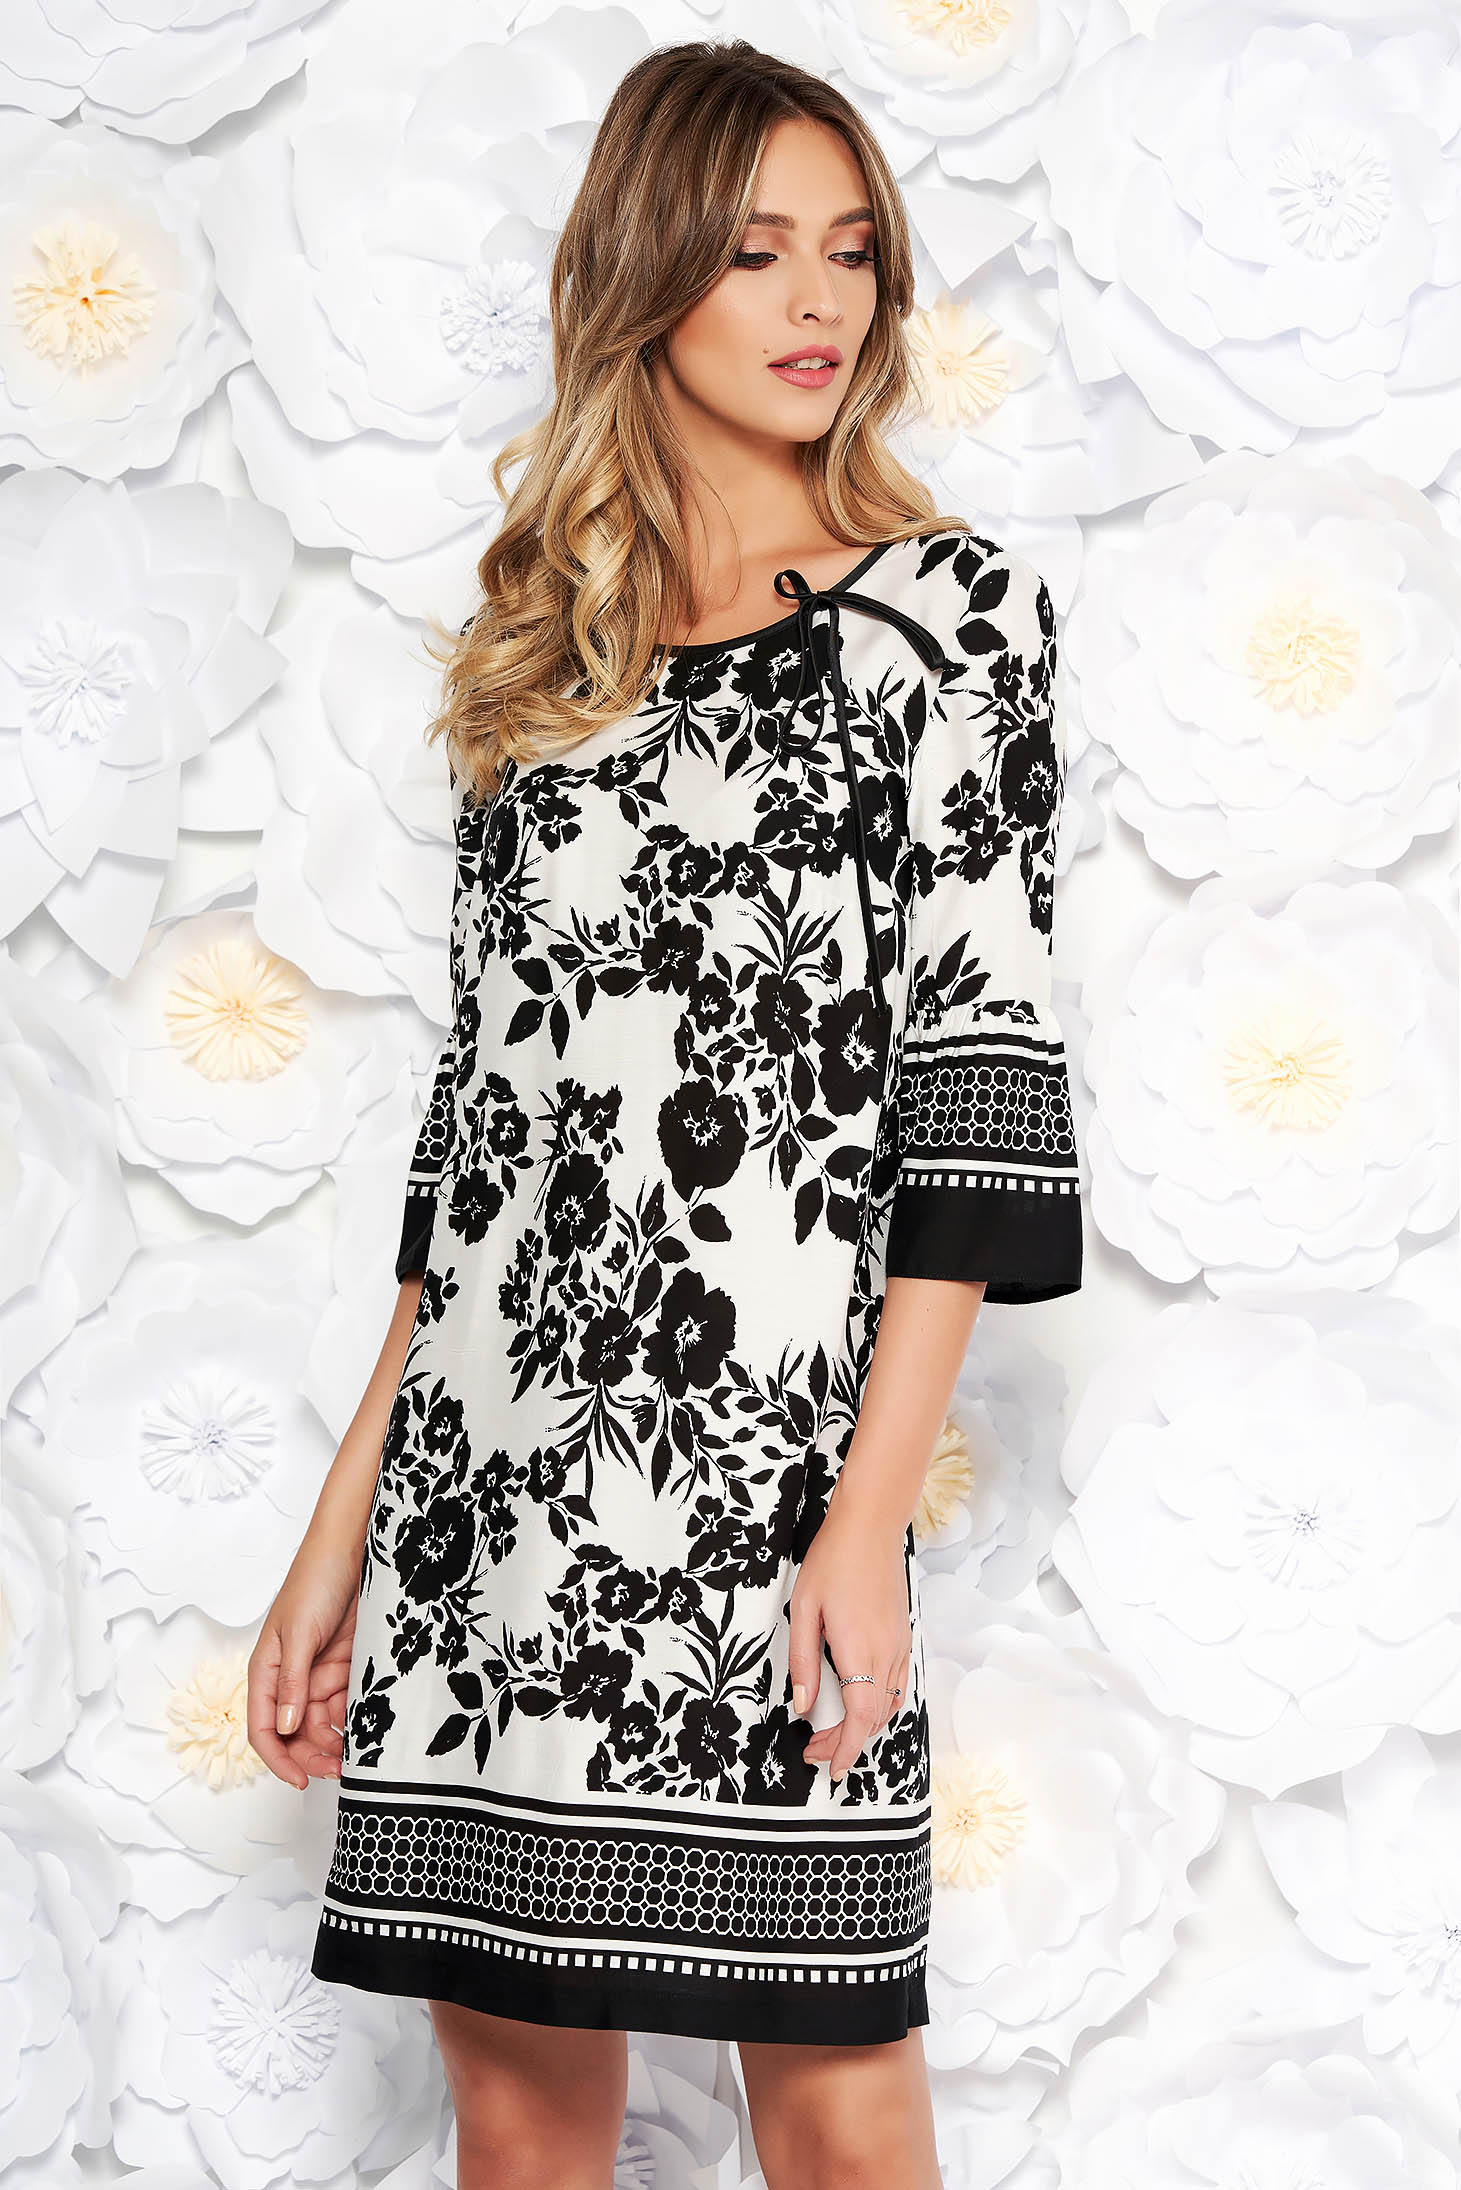 StarShinerS black daily flared dress cotton with floral prints